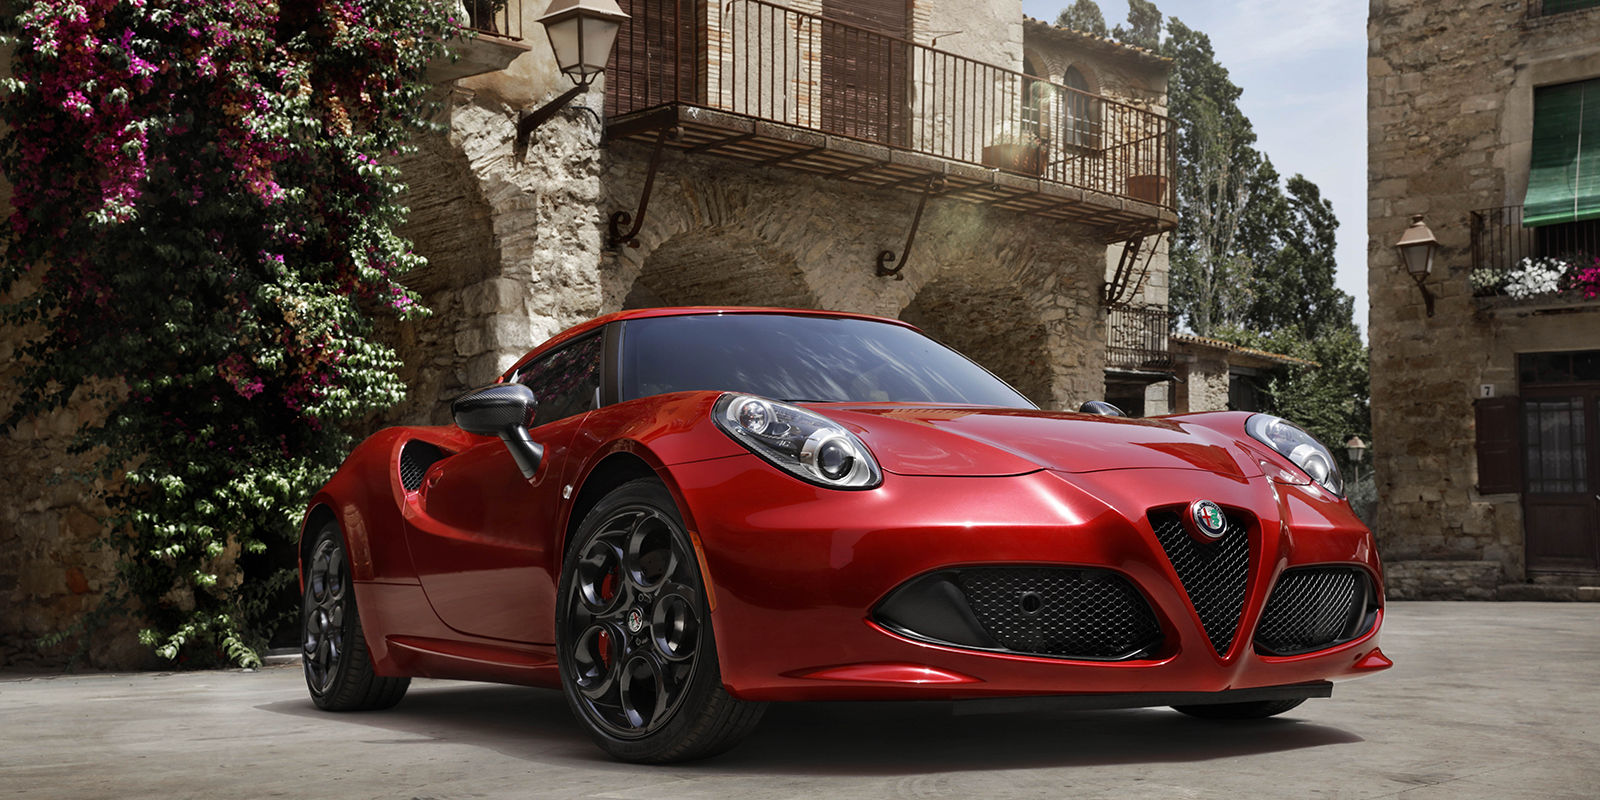 2017 alfa romeo 4c coupe alfa romeo of anaheim hills. Black Bedroom Furniture Sets. Home Design Ideas